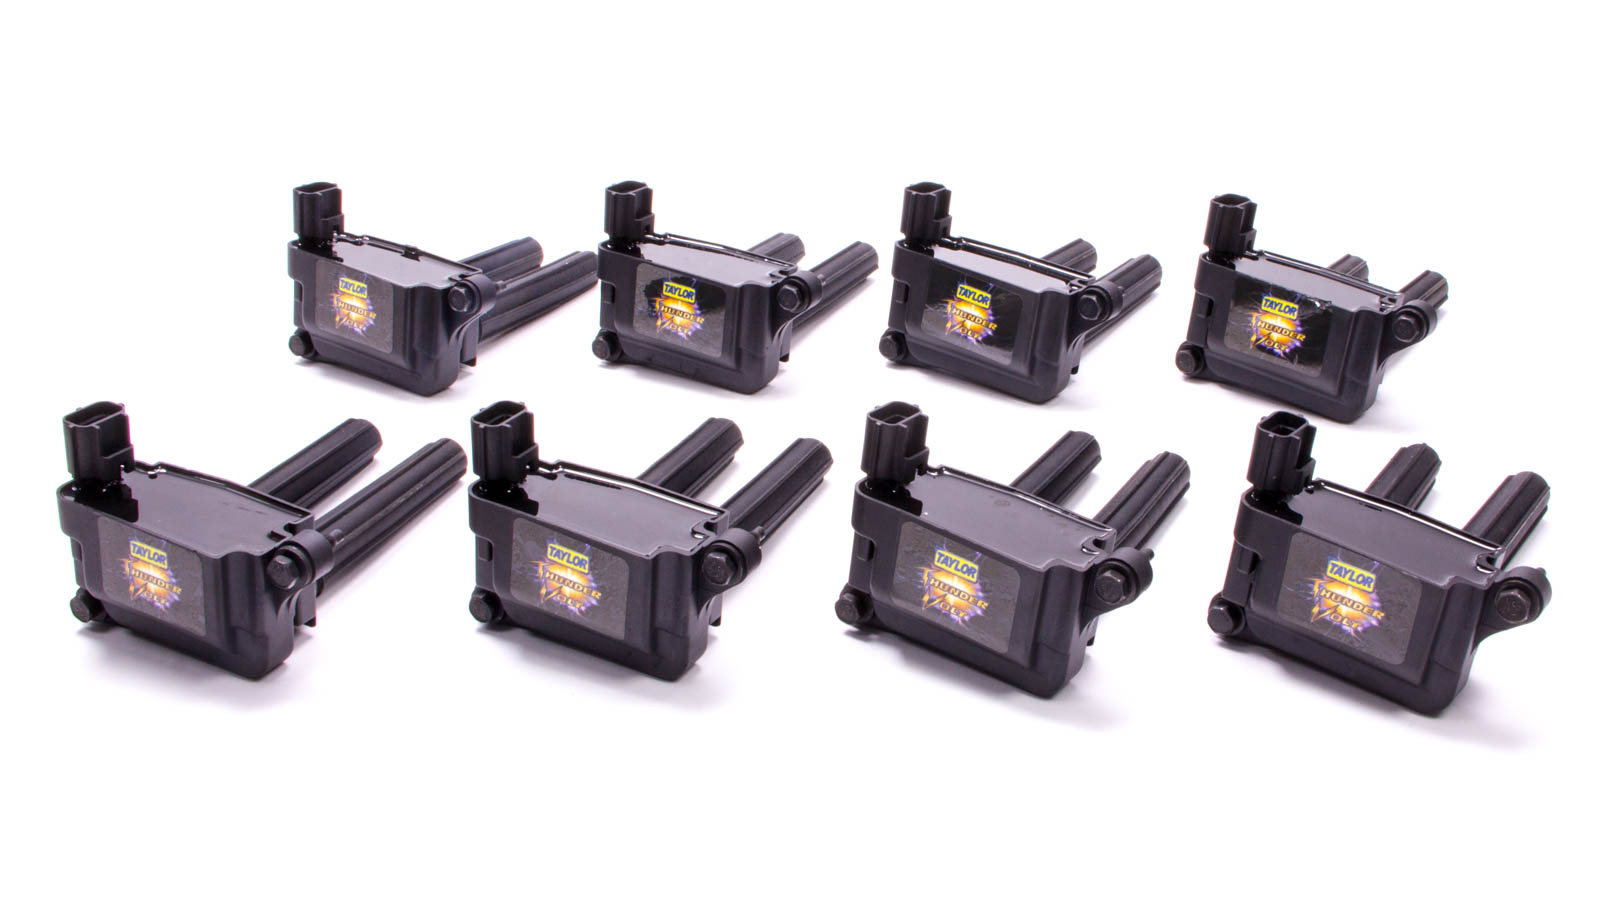 Pack of 8 Taylor Cable 718138 Thunder Volt Coil for Ford 4.6L//5.4L 3-Valve Engine,